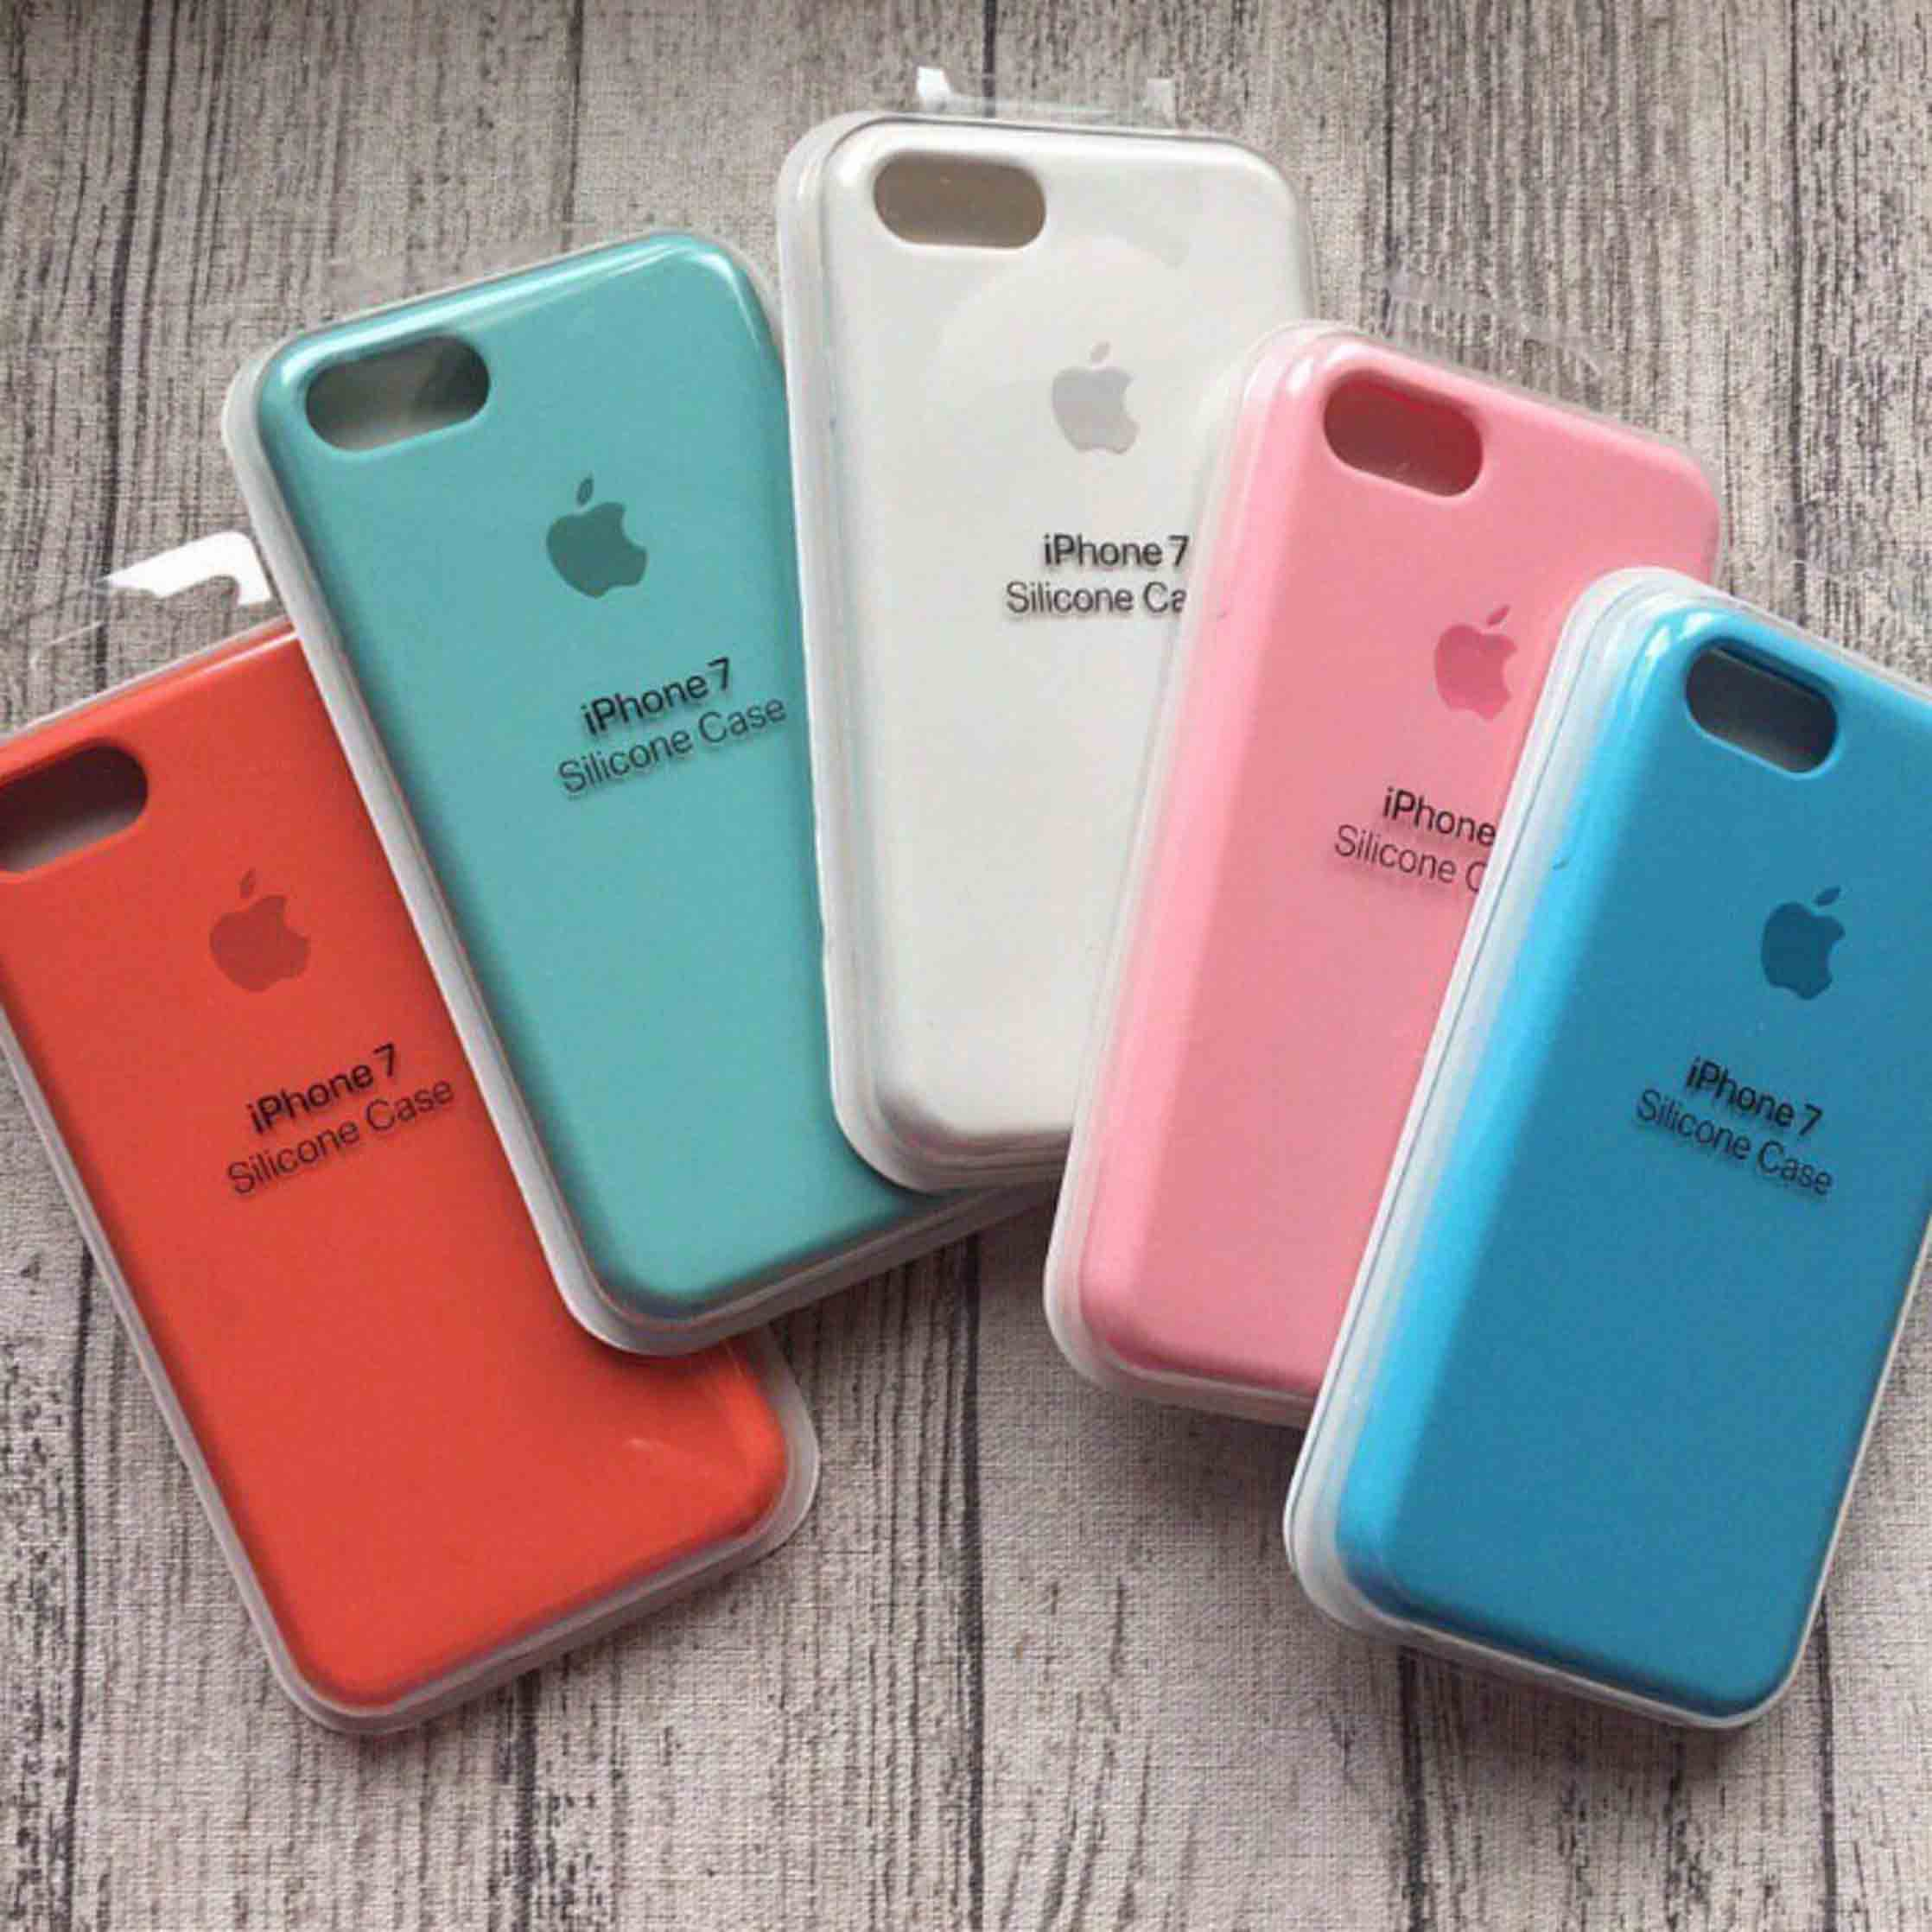 Чехол на Айфон, Apple Silicone Case іPhone - 5/5s/6/6s/6+/7/7+/8/8+/X фото 6